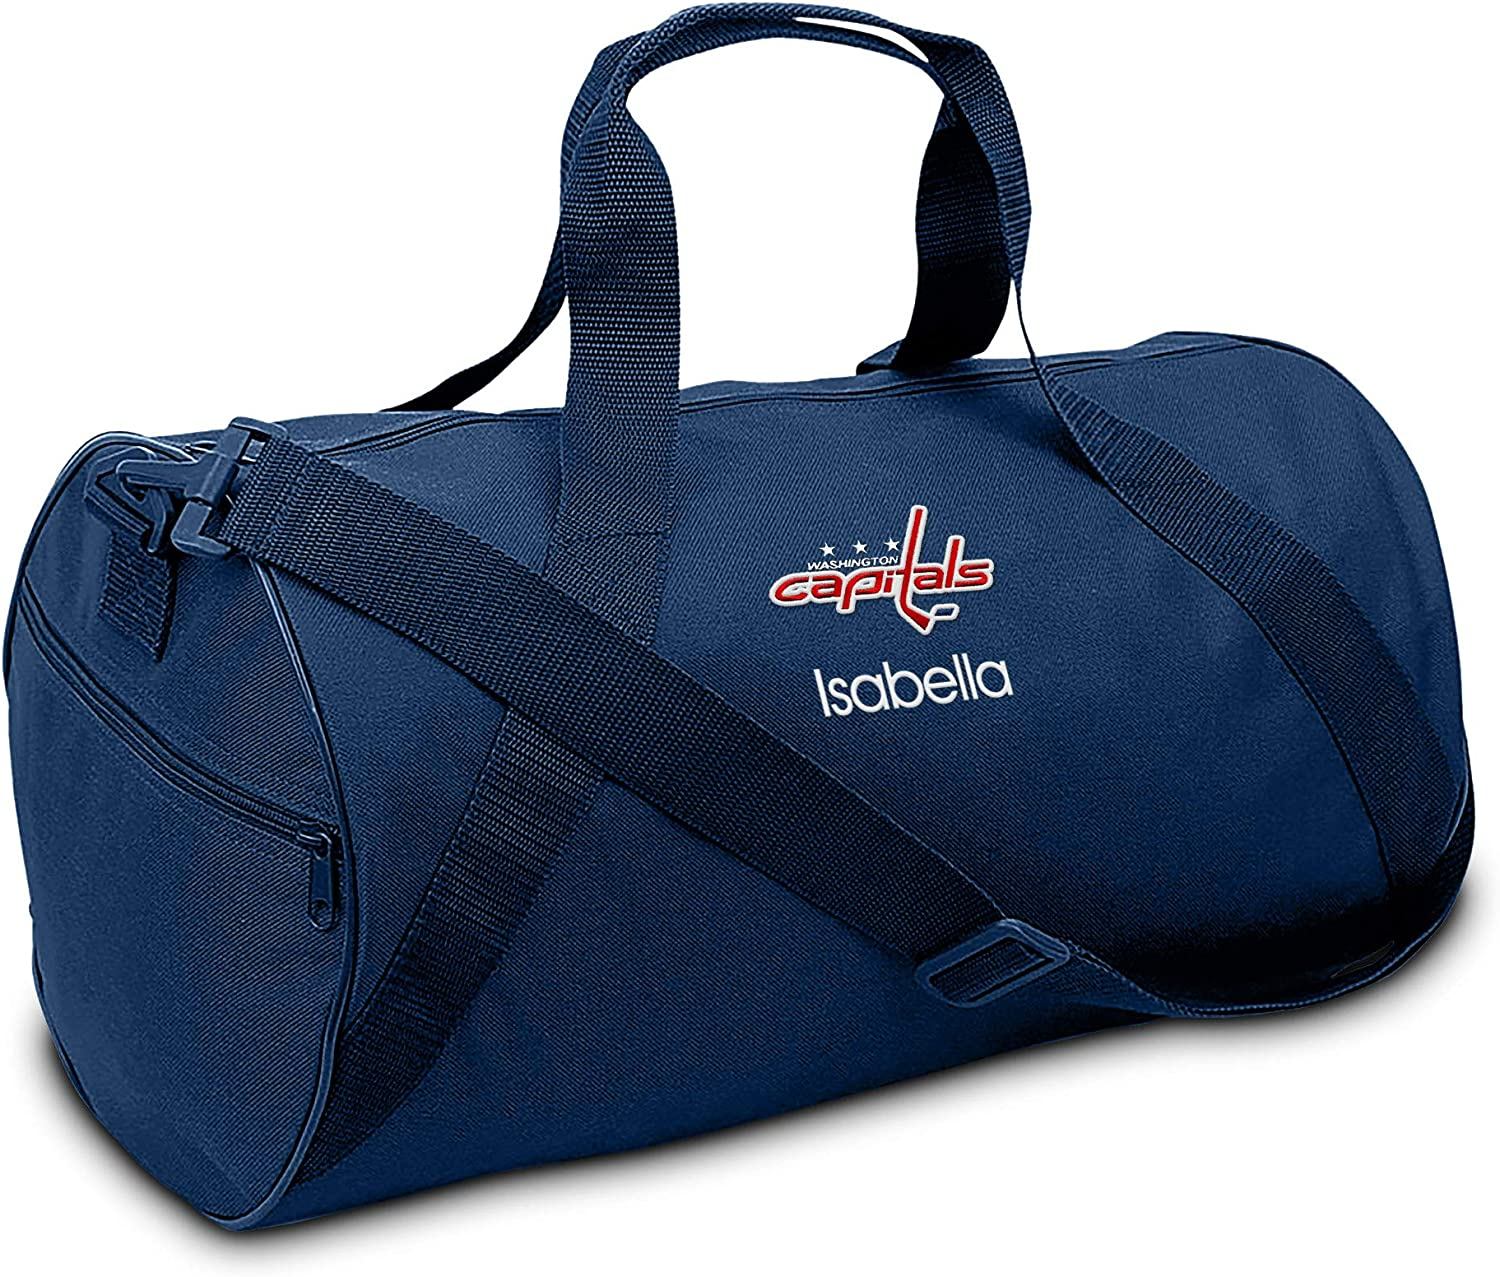 Designs by Chad and Jake Washington Capitals Personalized Youth Duffel Bag